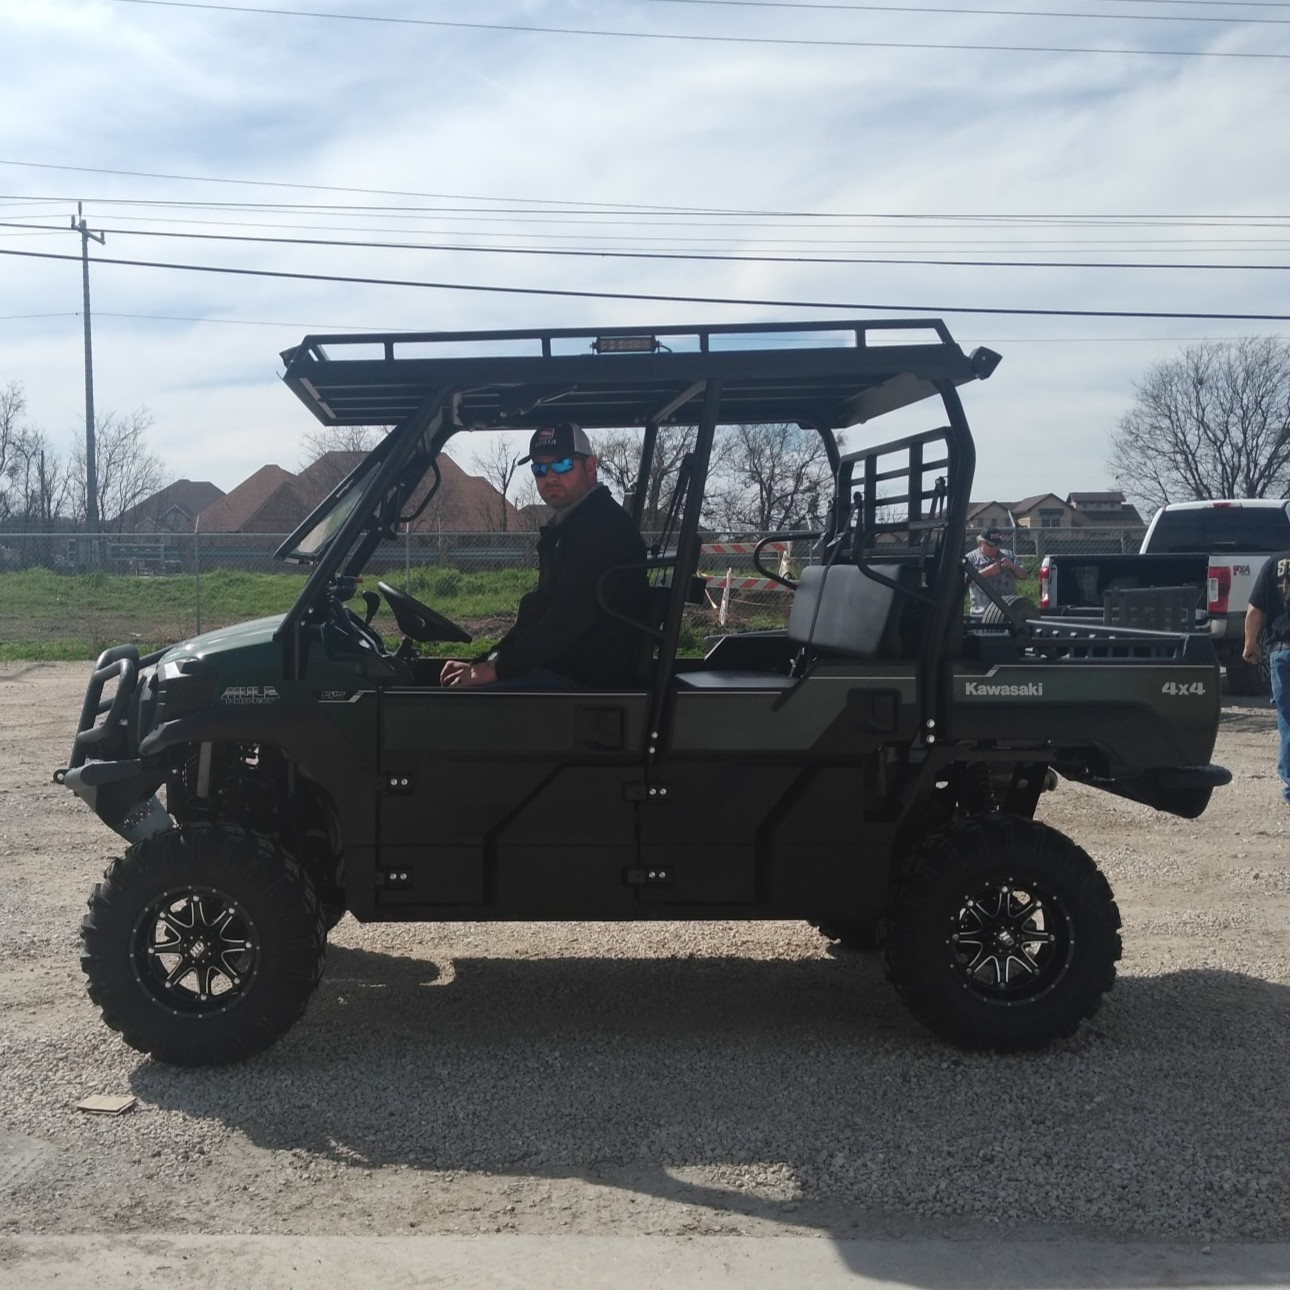 texas-outdoors-utv-outfit-kawasaki-mule-pro-fxt-metal-top-high-seat-bumper-lift-wheels-and-tires.jpg